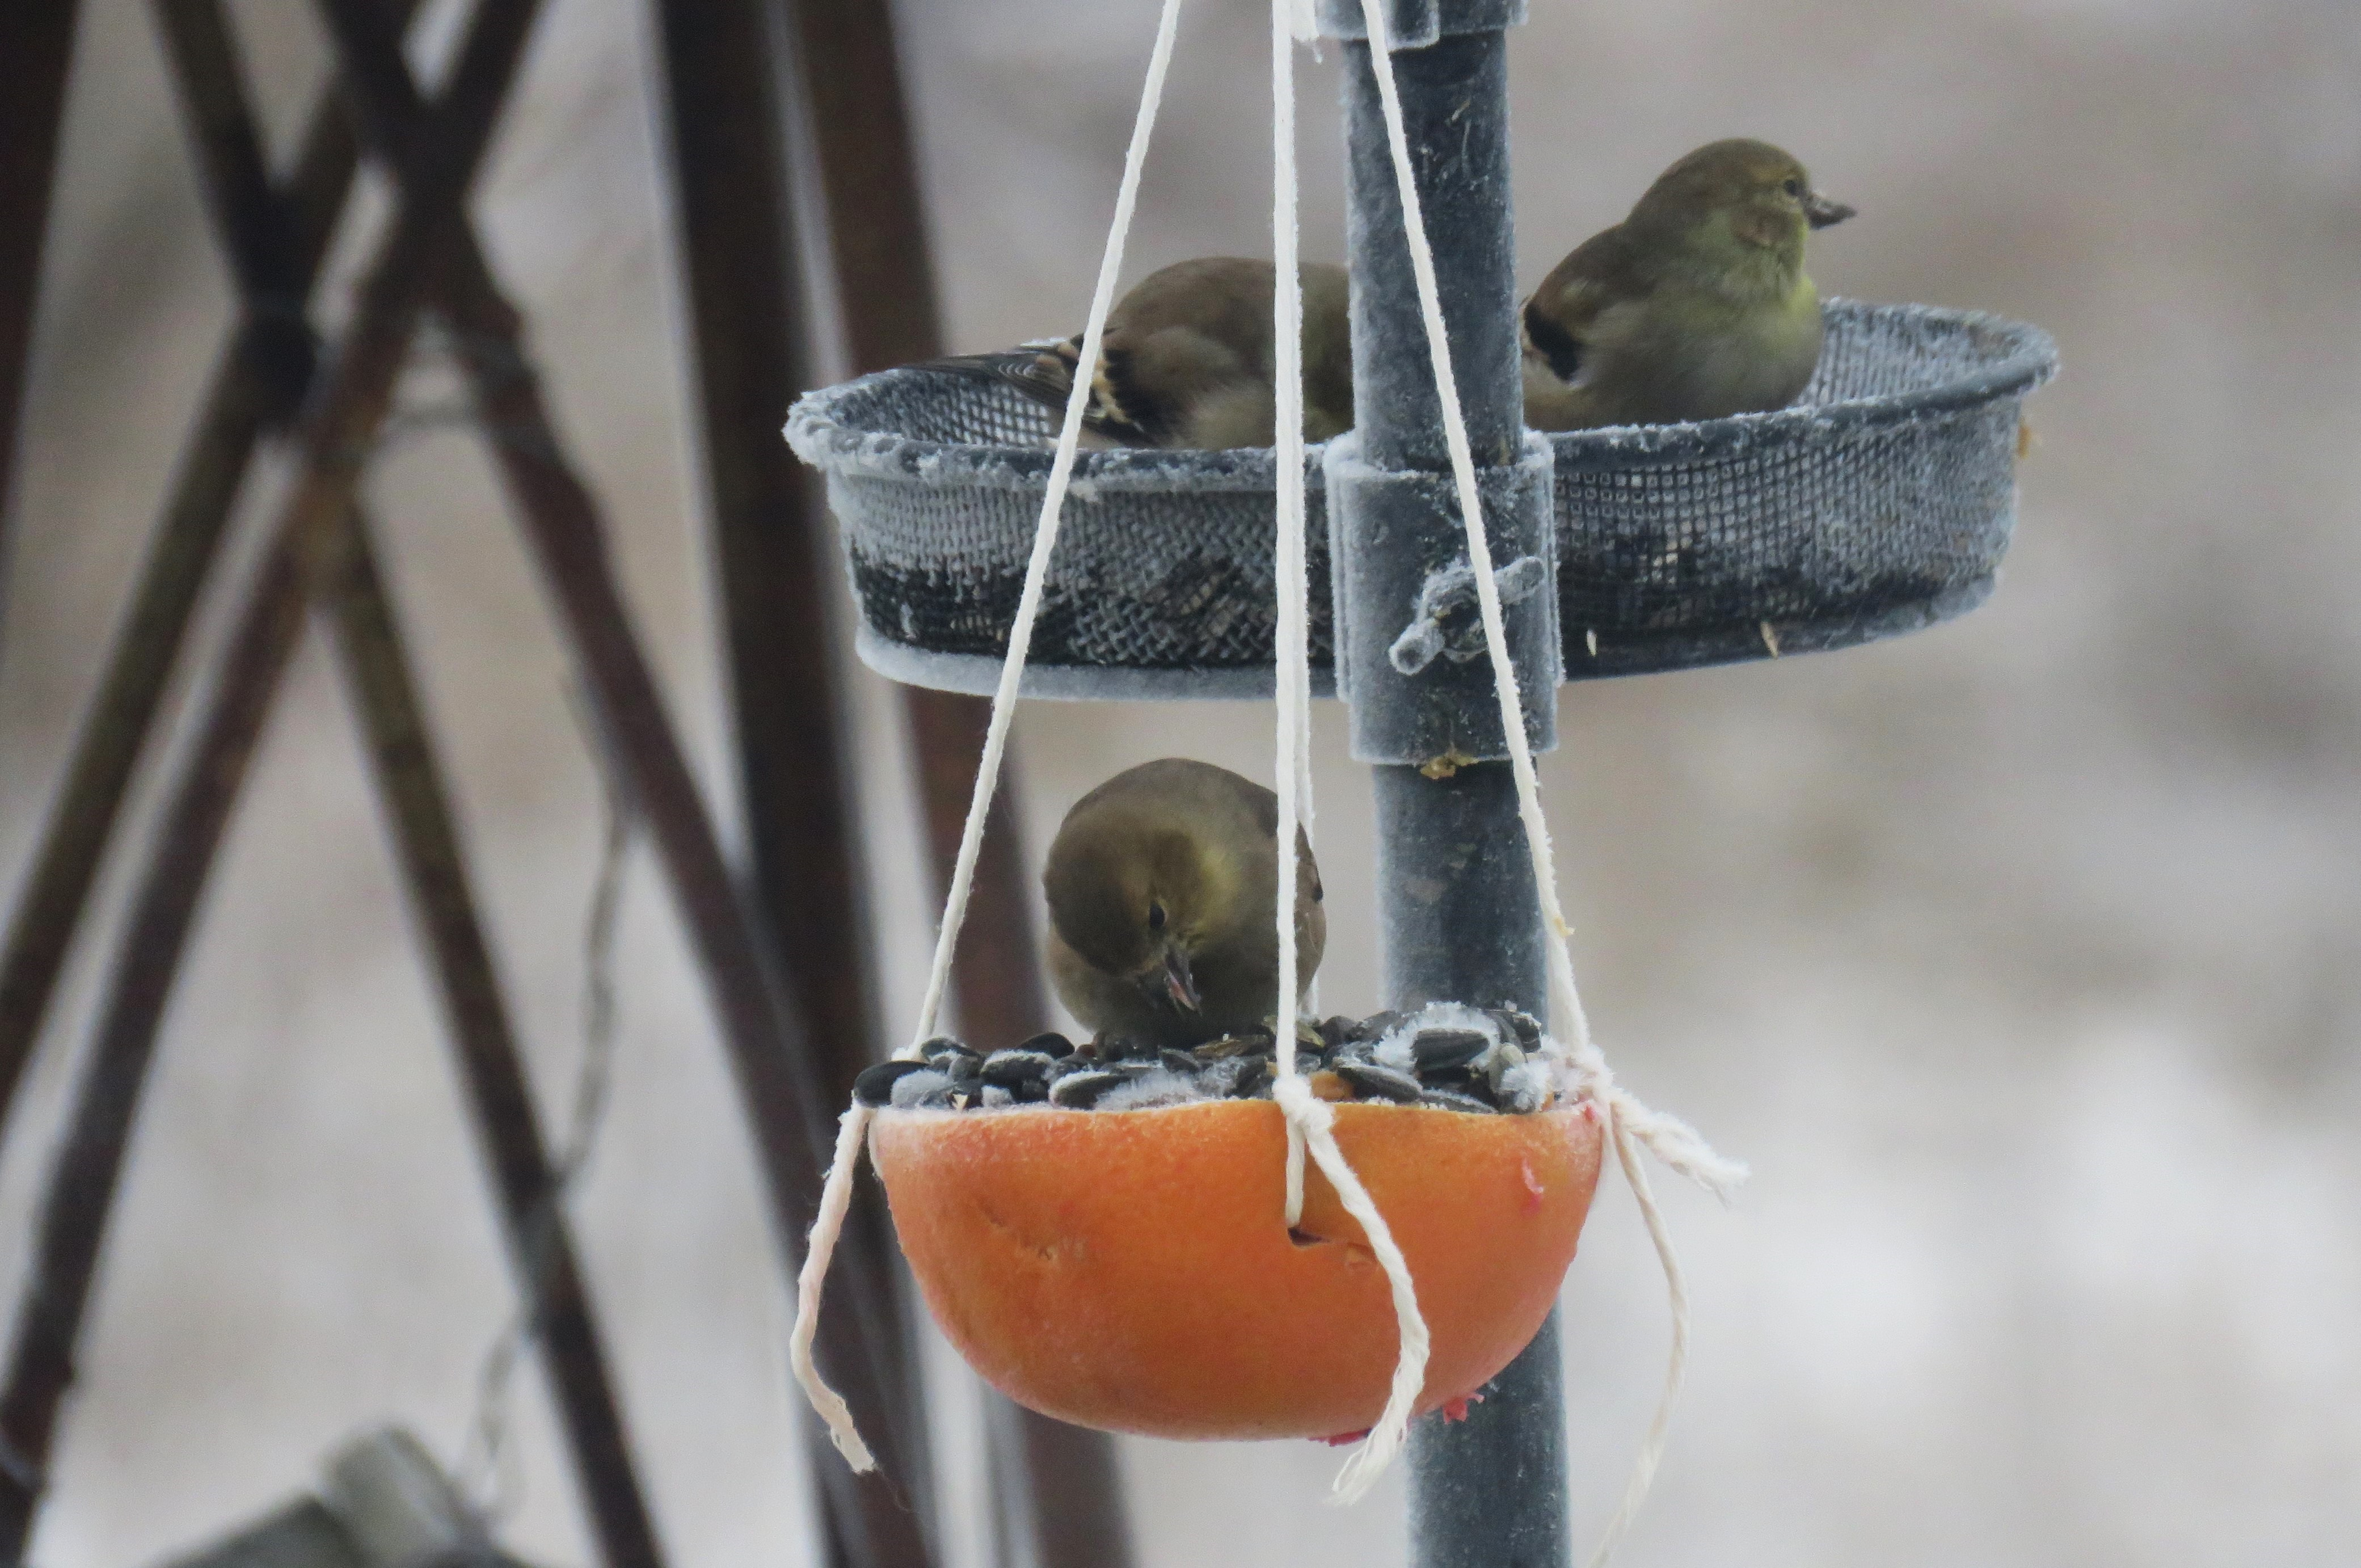 A bird eats from a grapefruit feeder filled with seeds and peanut butter